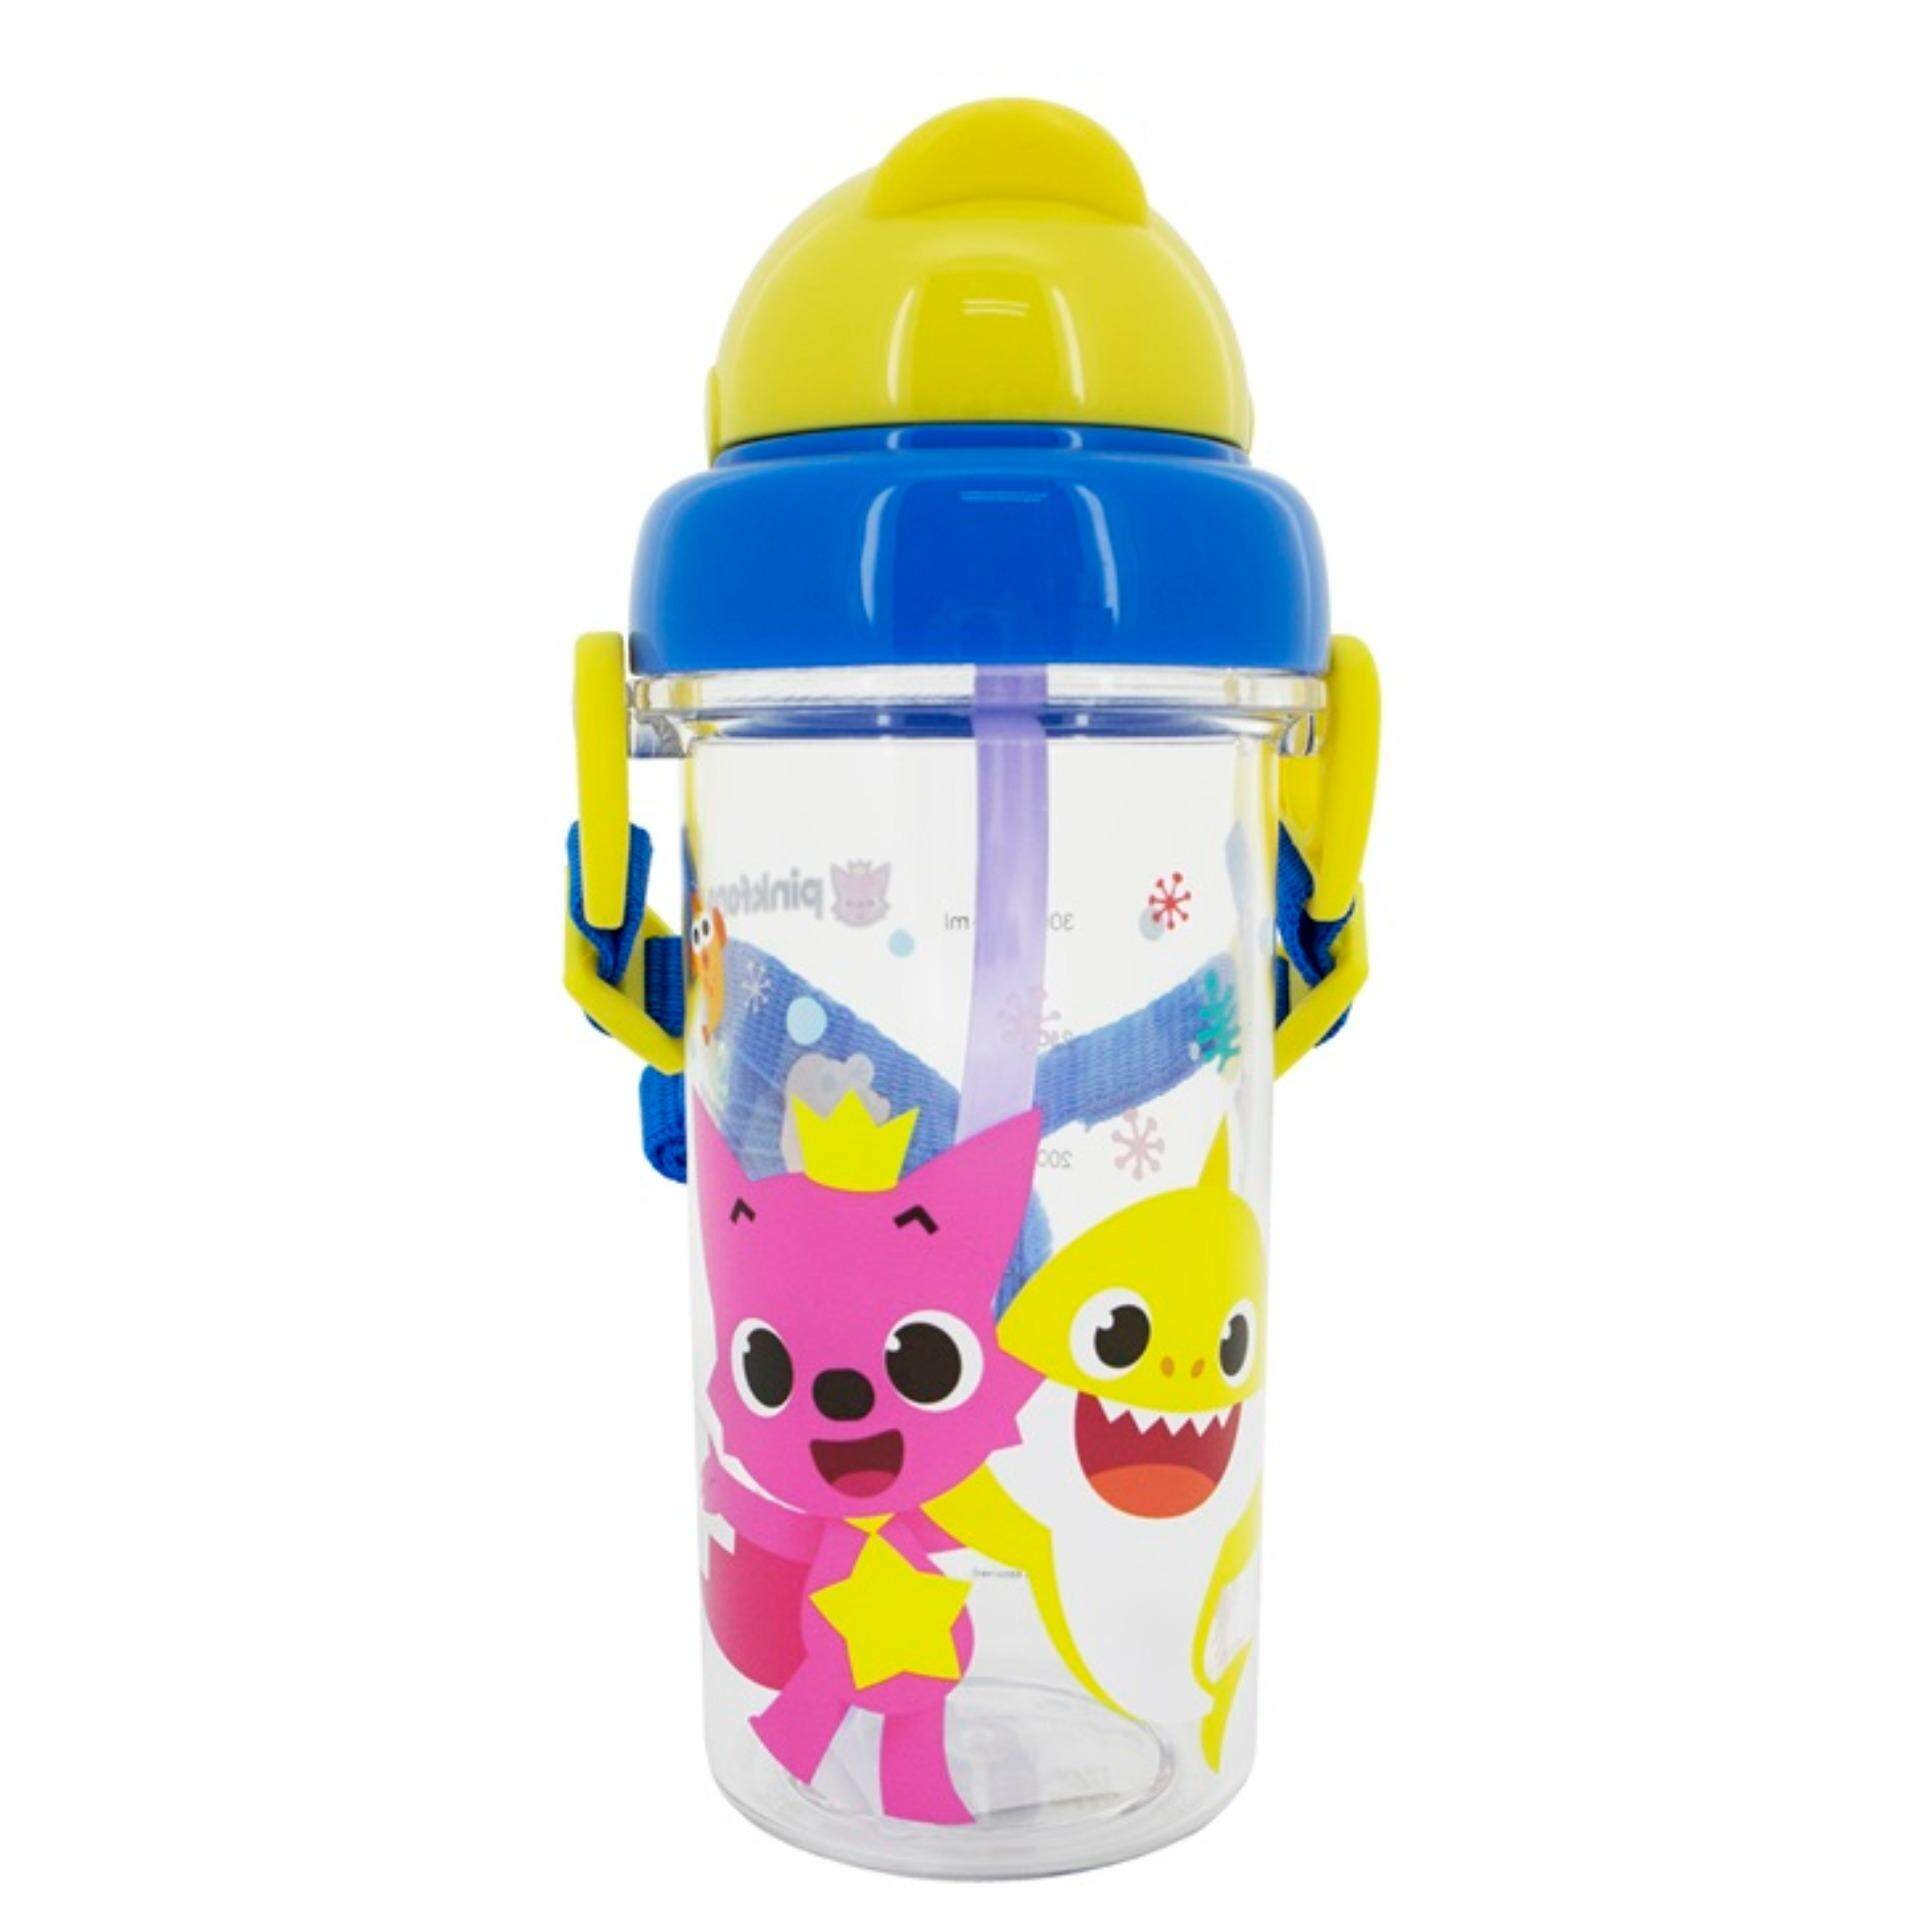 Pinkfong Baby Shark 400ML BPA Free Children Kids Toddler Tritan Bottle With Straw And String - Multicolour